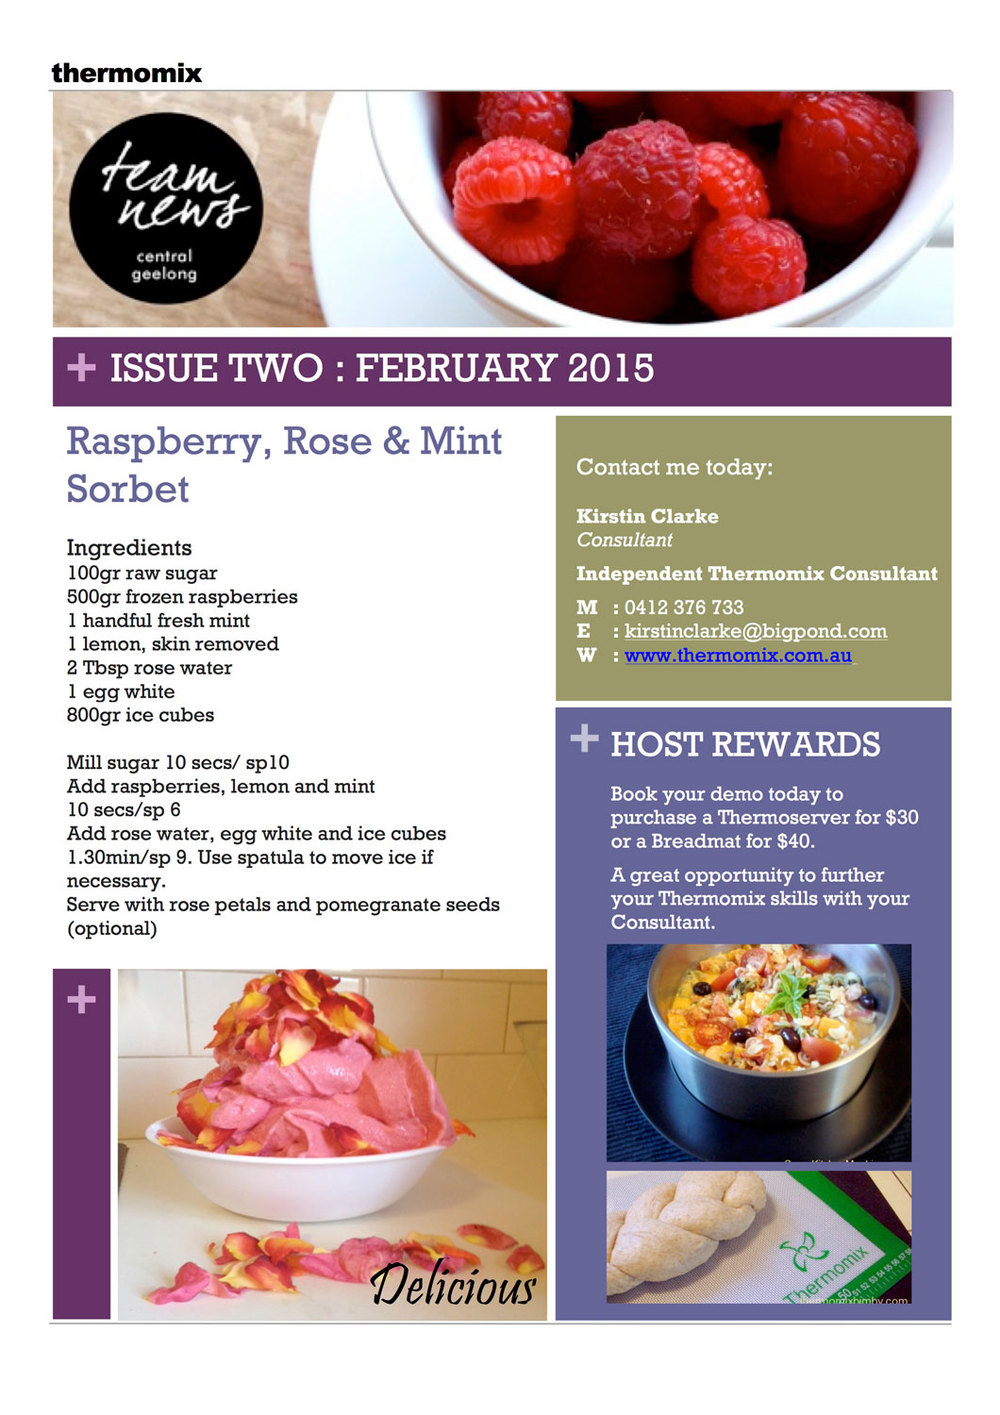 Thermomix Monthly Newsletter